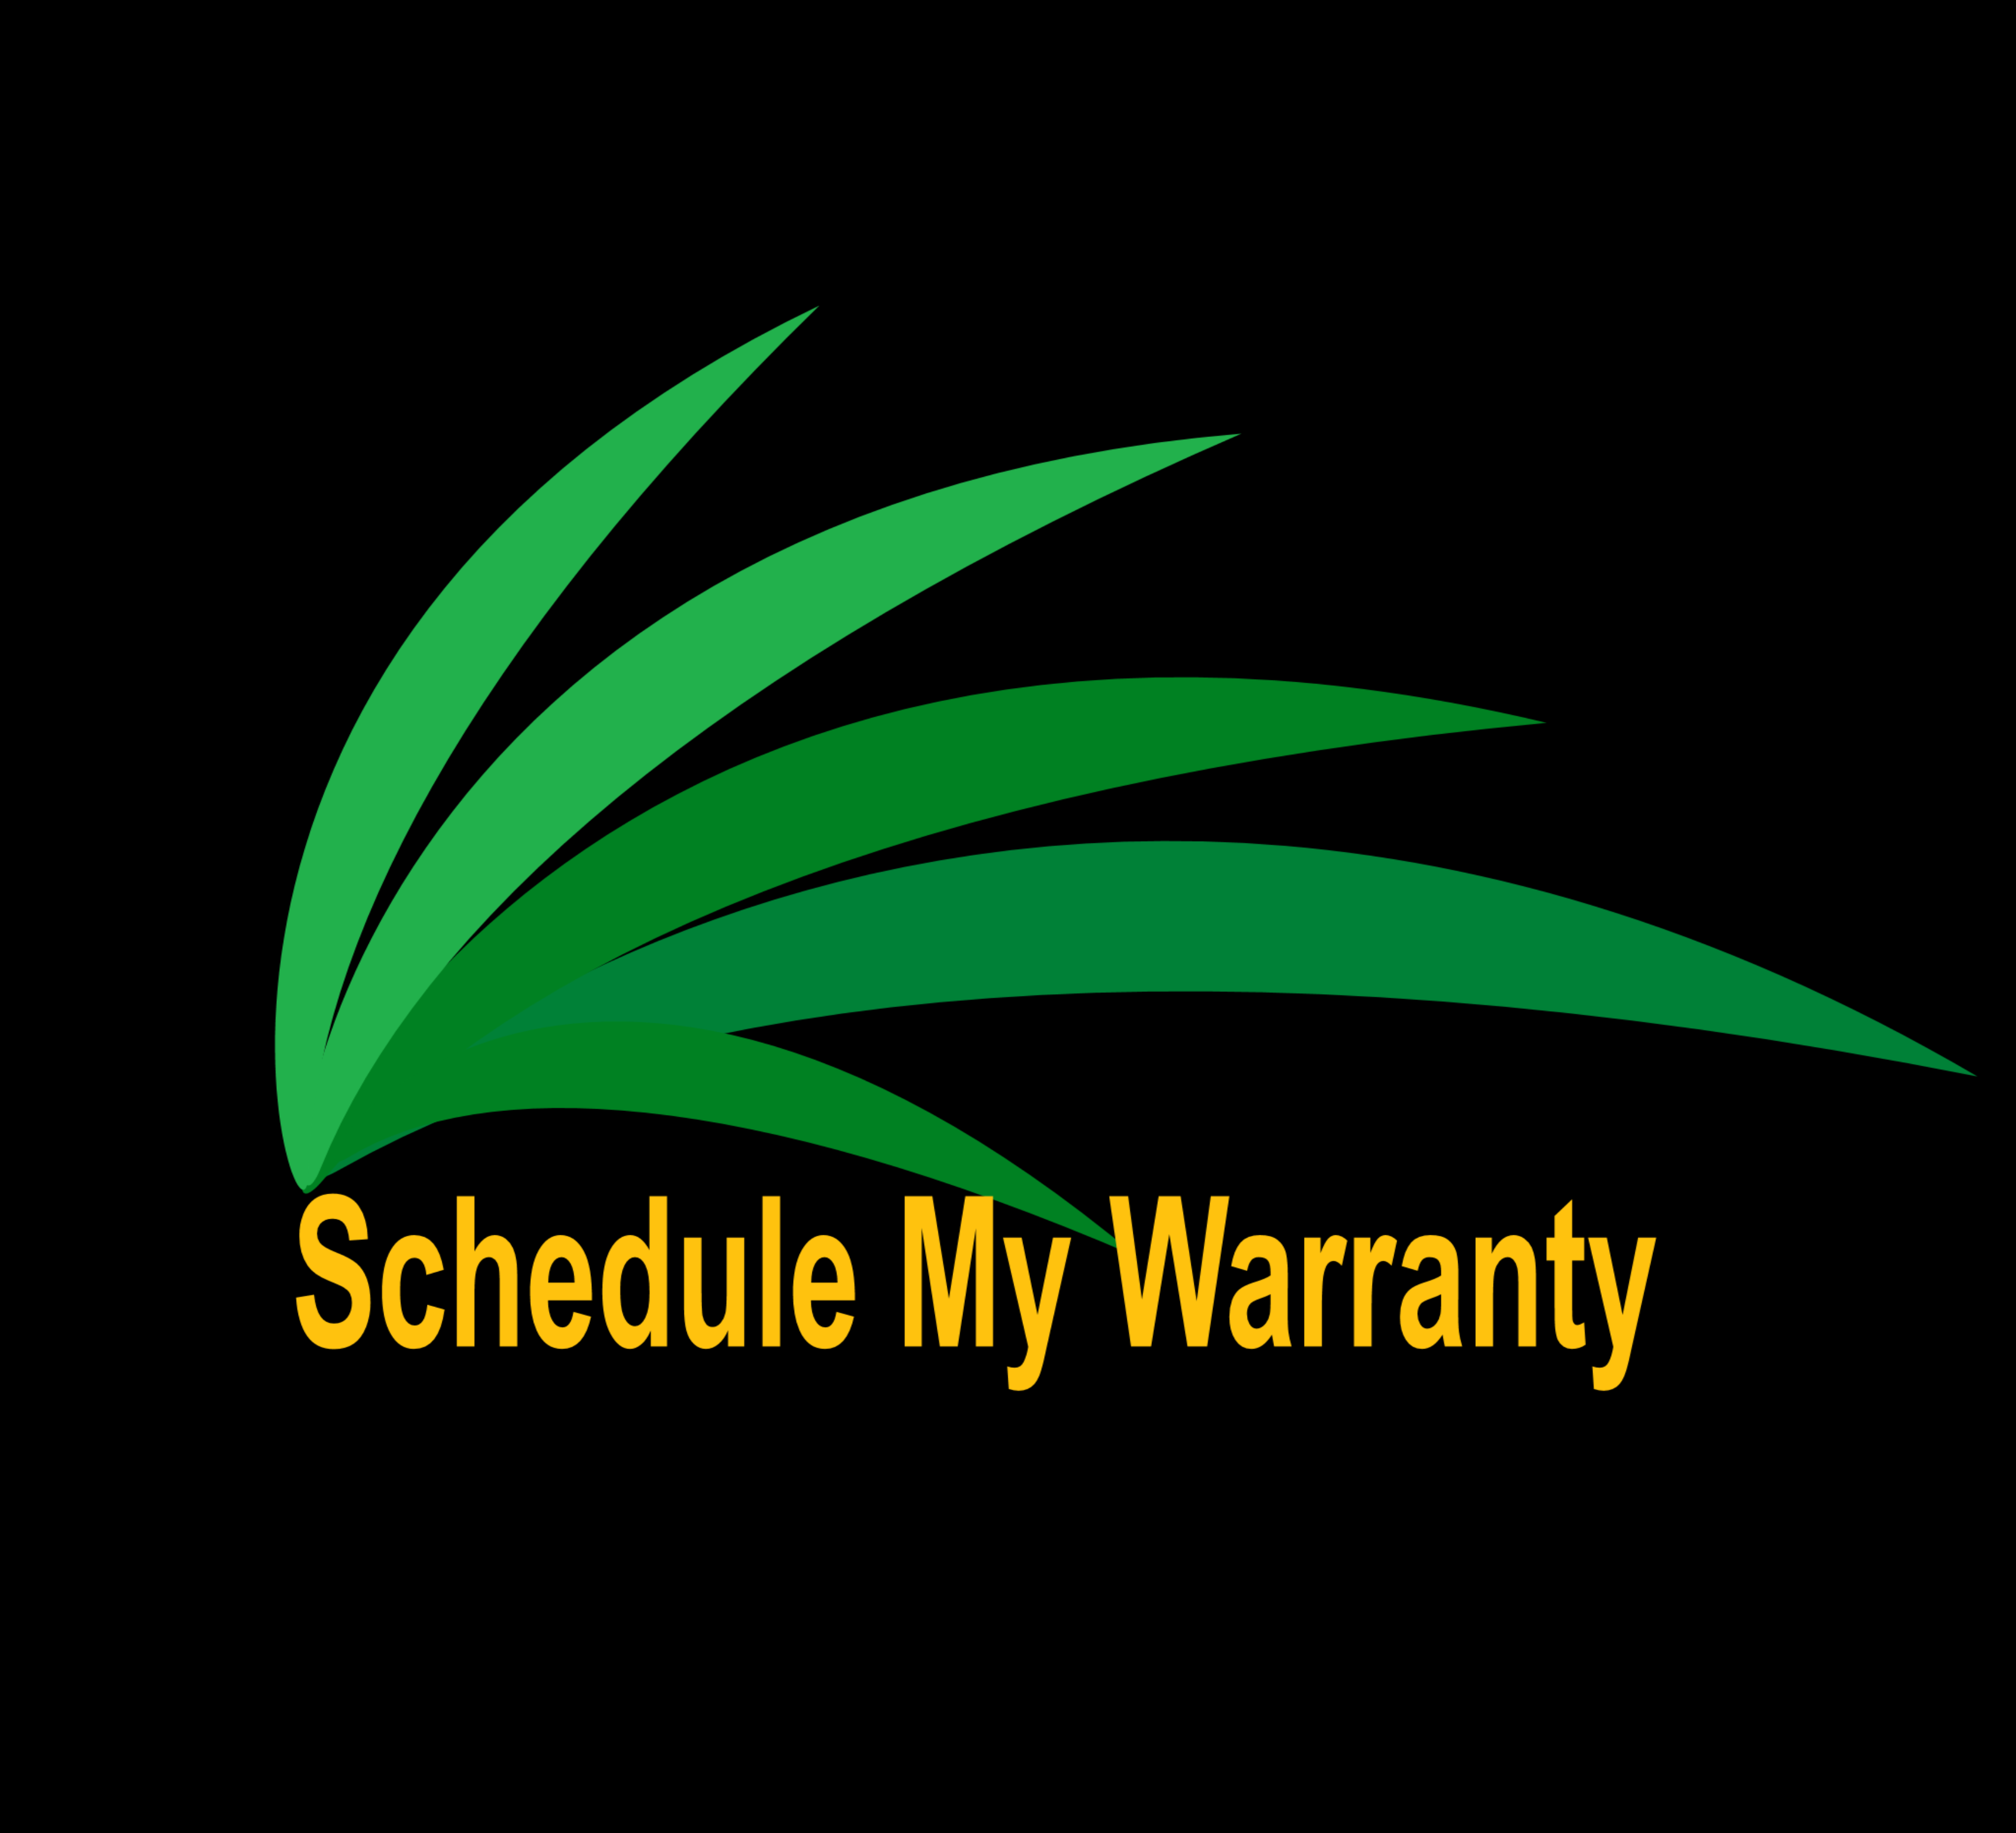 Schedule My Warranty